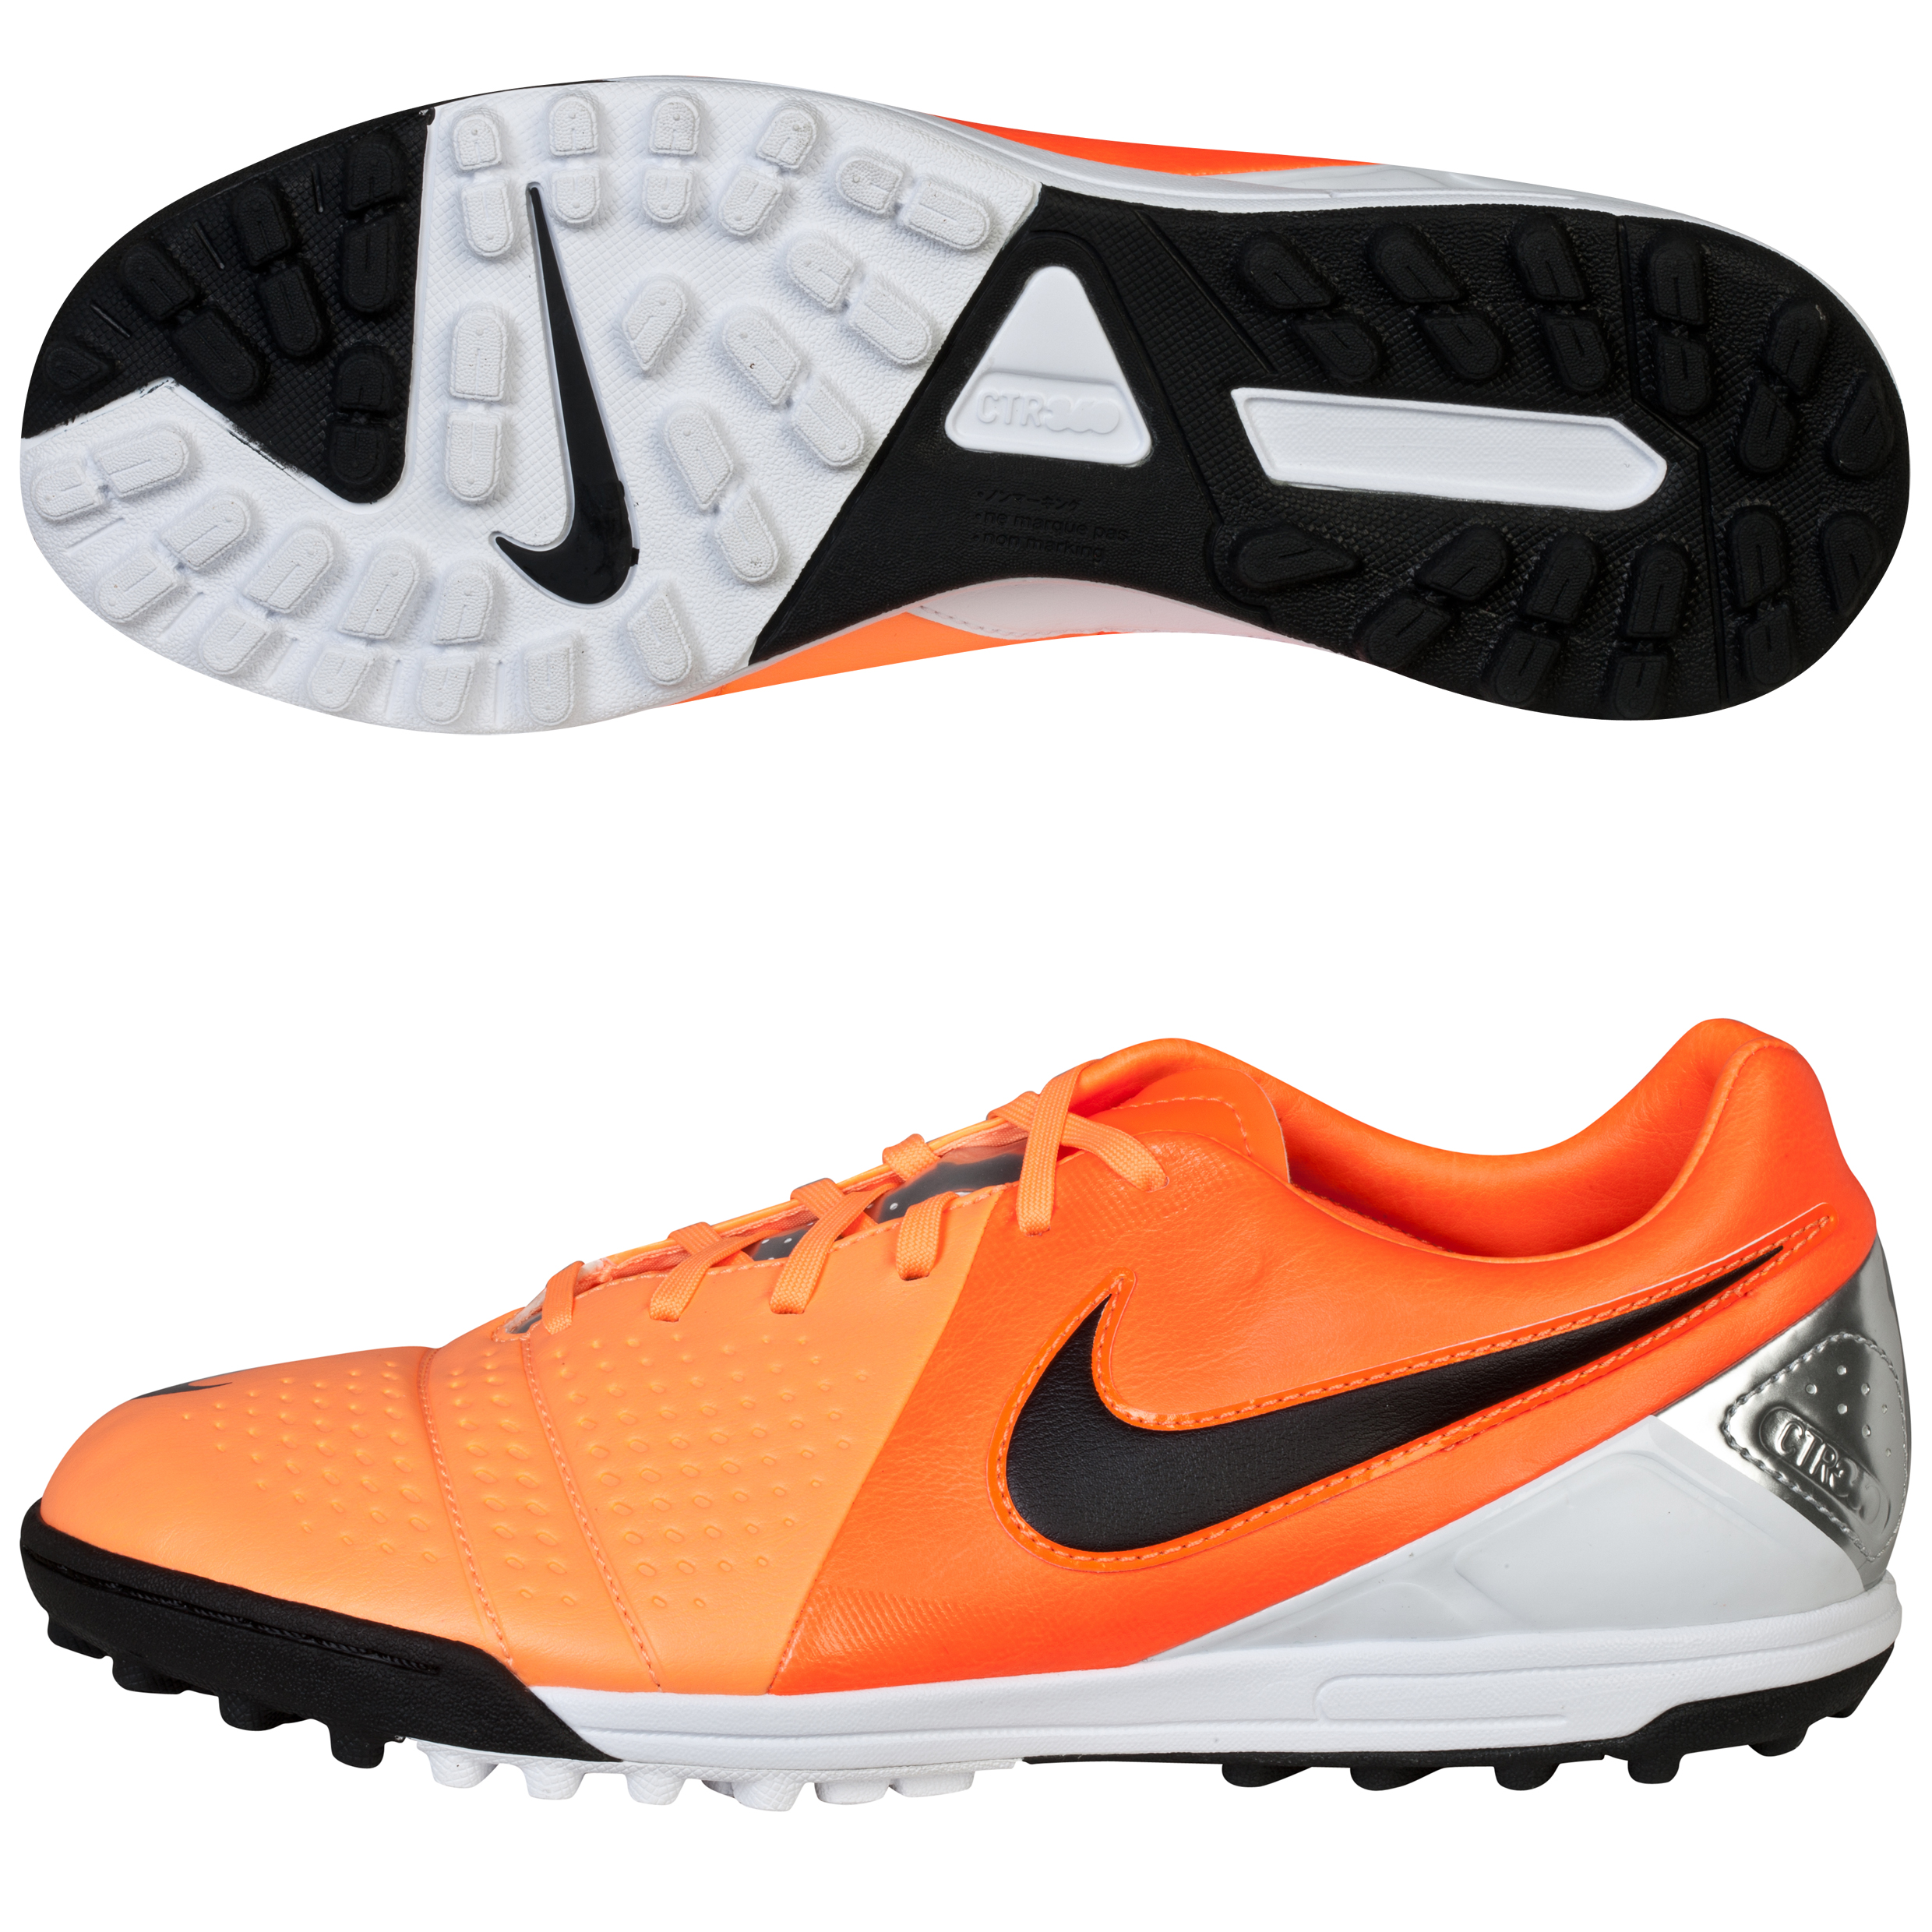 Nike CTR360 Libretto III Astroturf Trainers Orange